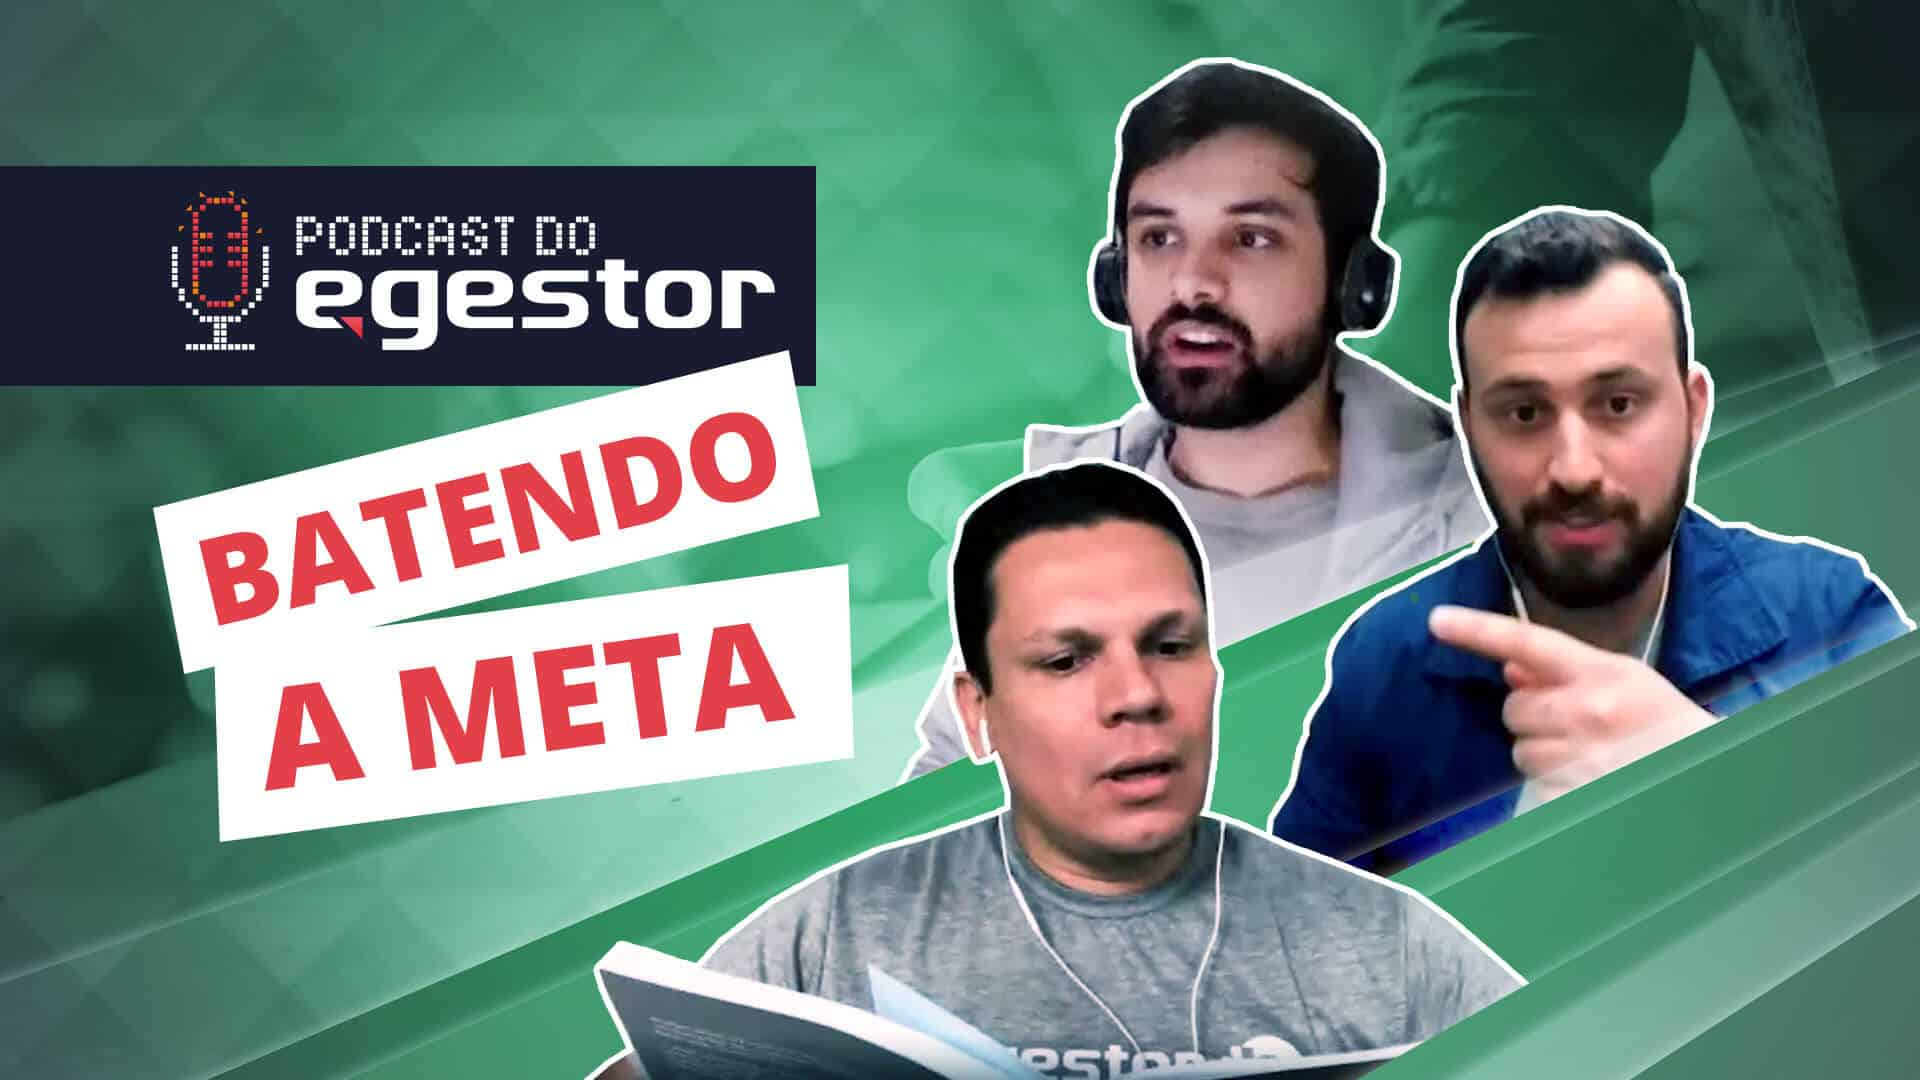 Batendo a meta - Podcast do eGestor